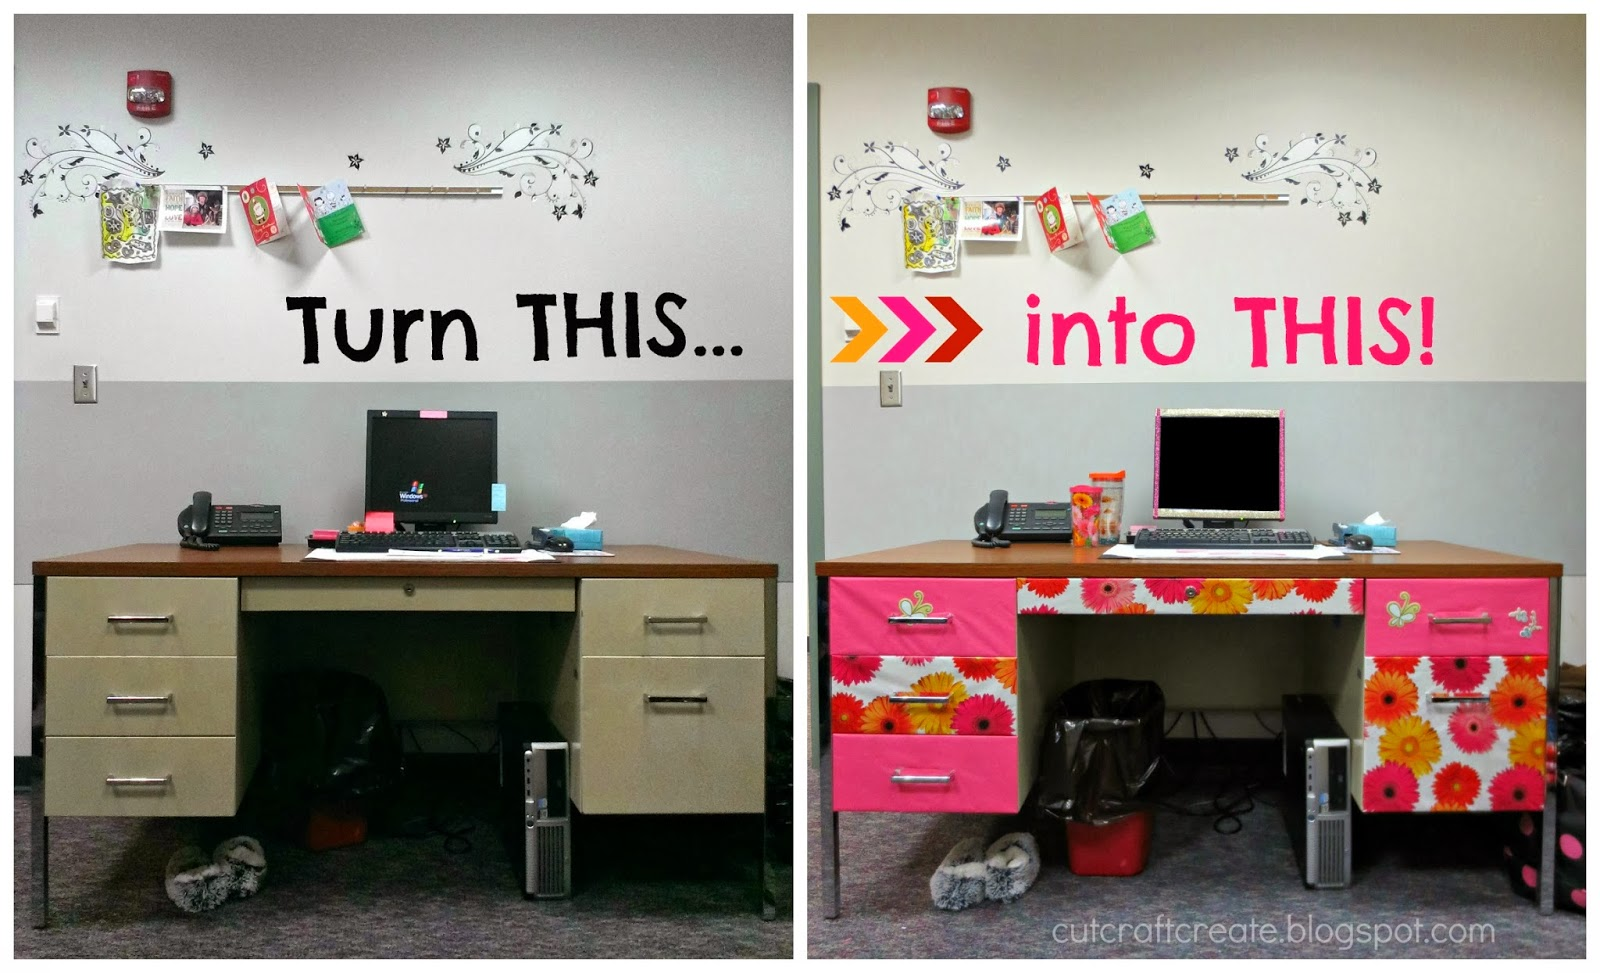 Office Space Decoration Ideas Cut Craft Create Decorate Your Office Space Part 1